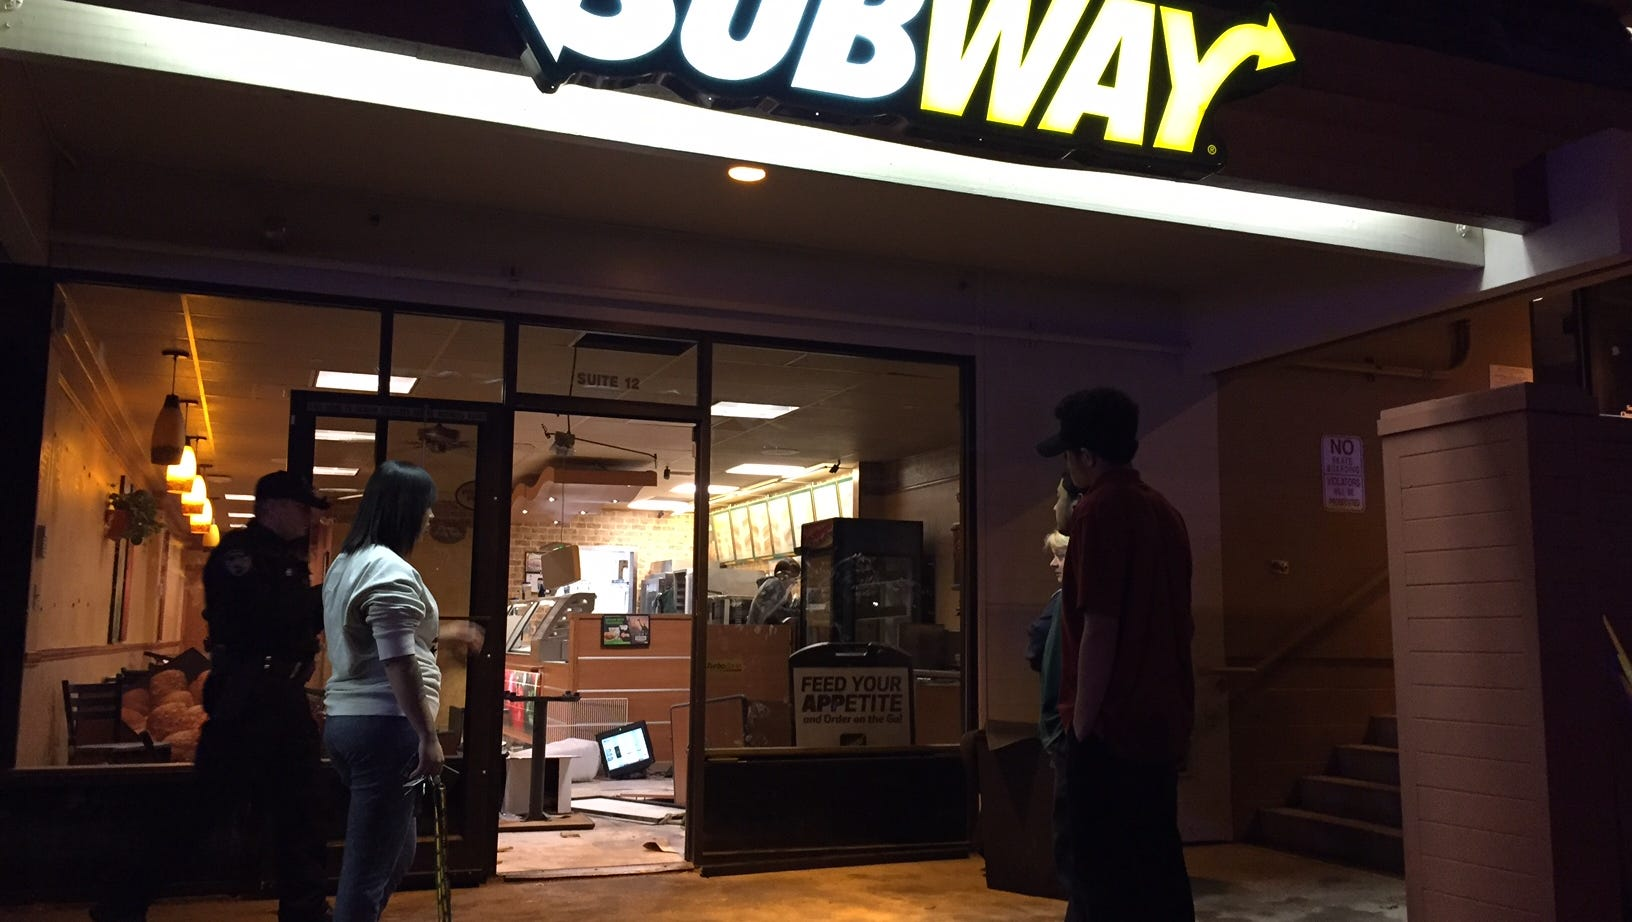 Naked woman trashes Subway restaurant in Alaska, believed